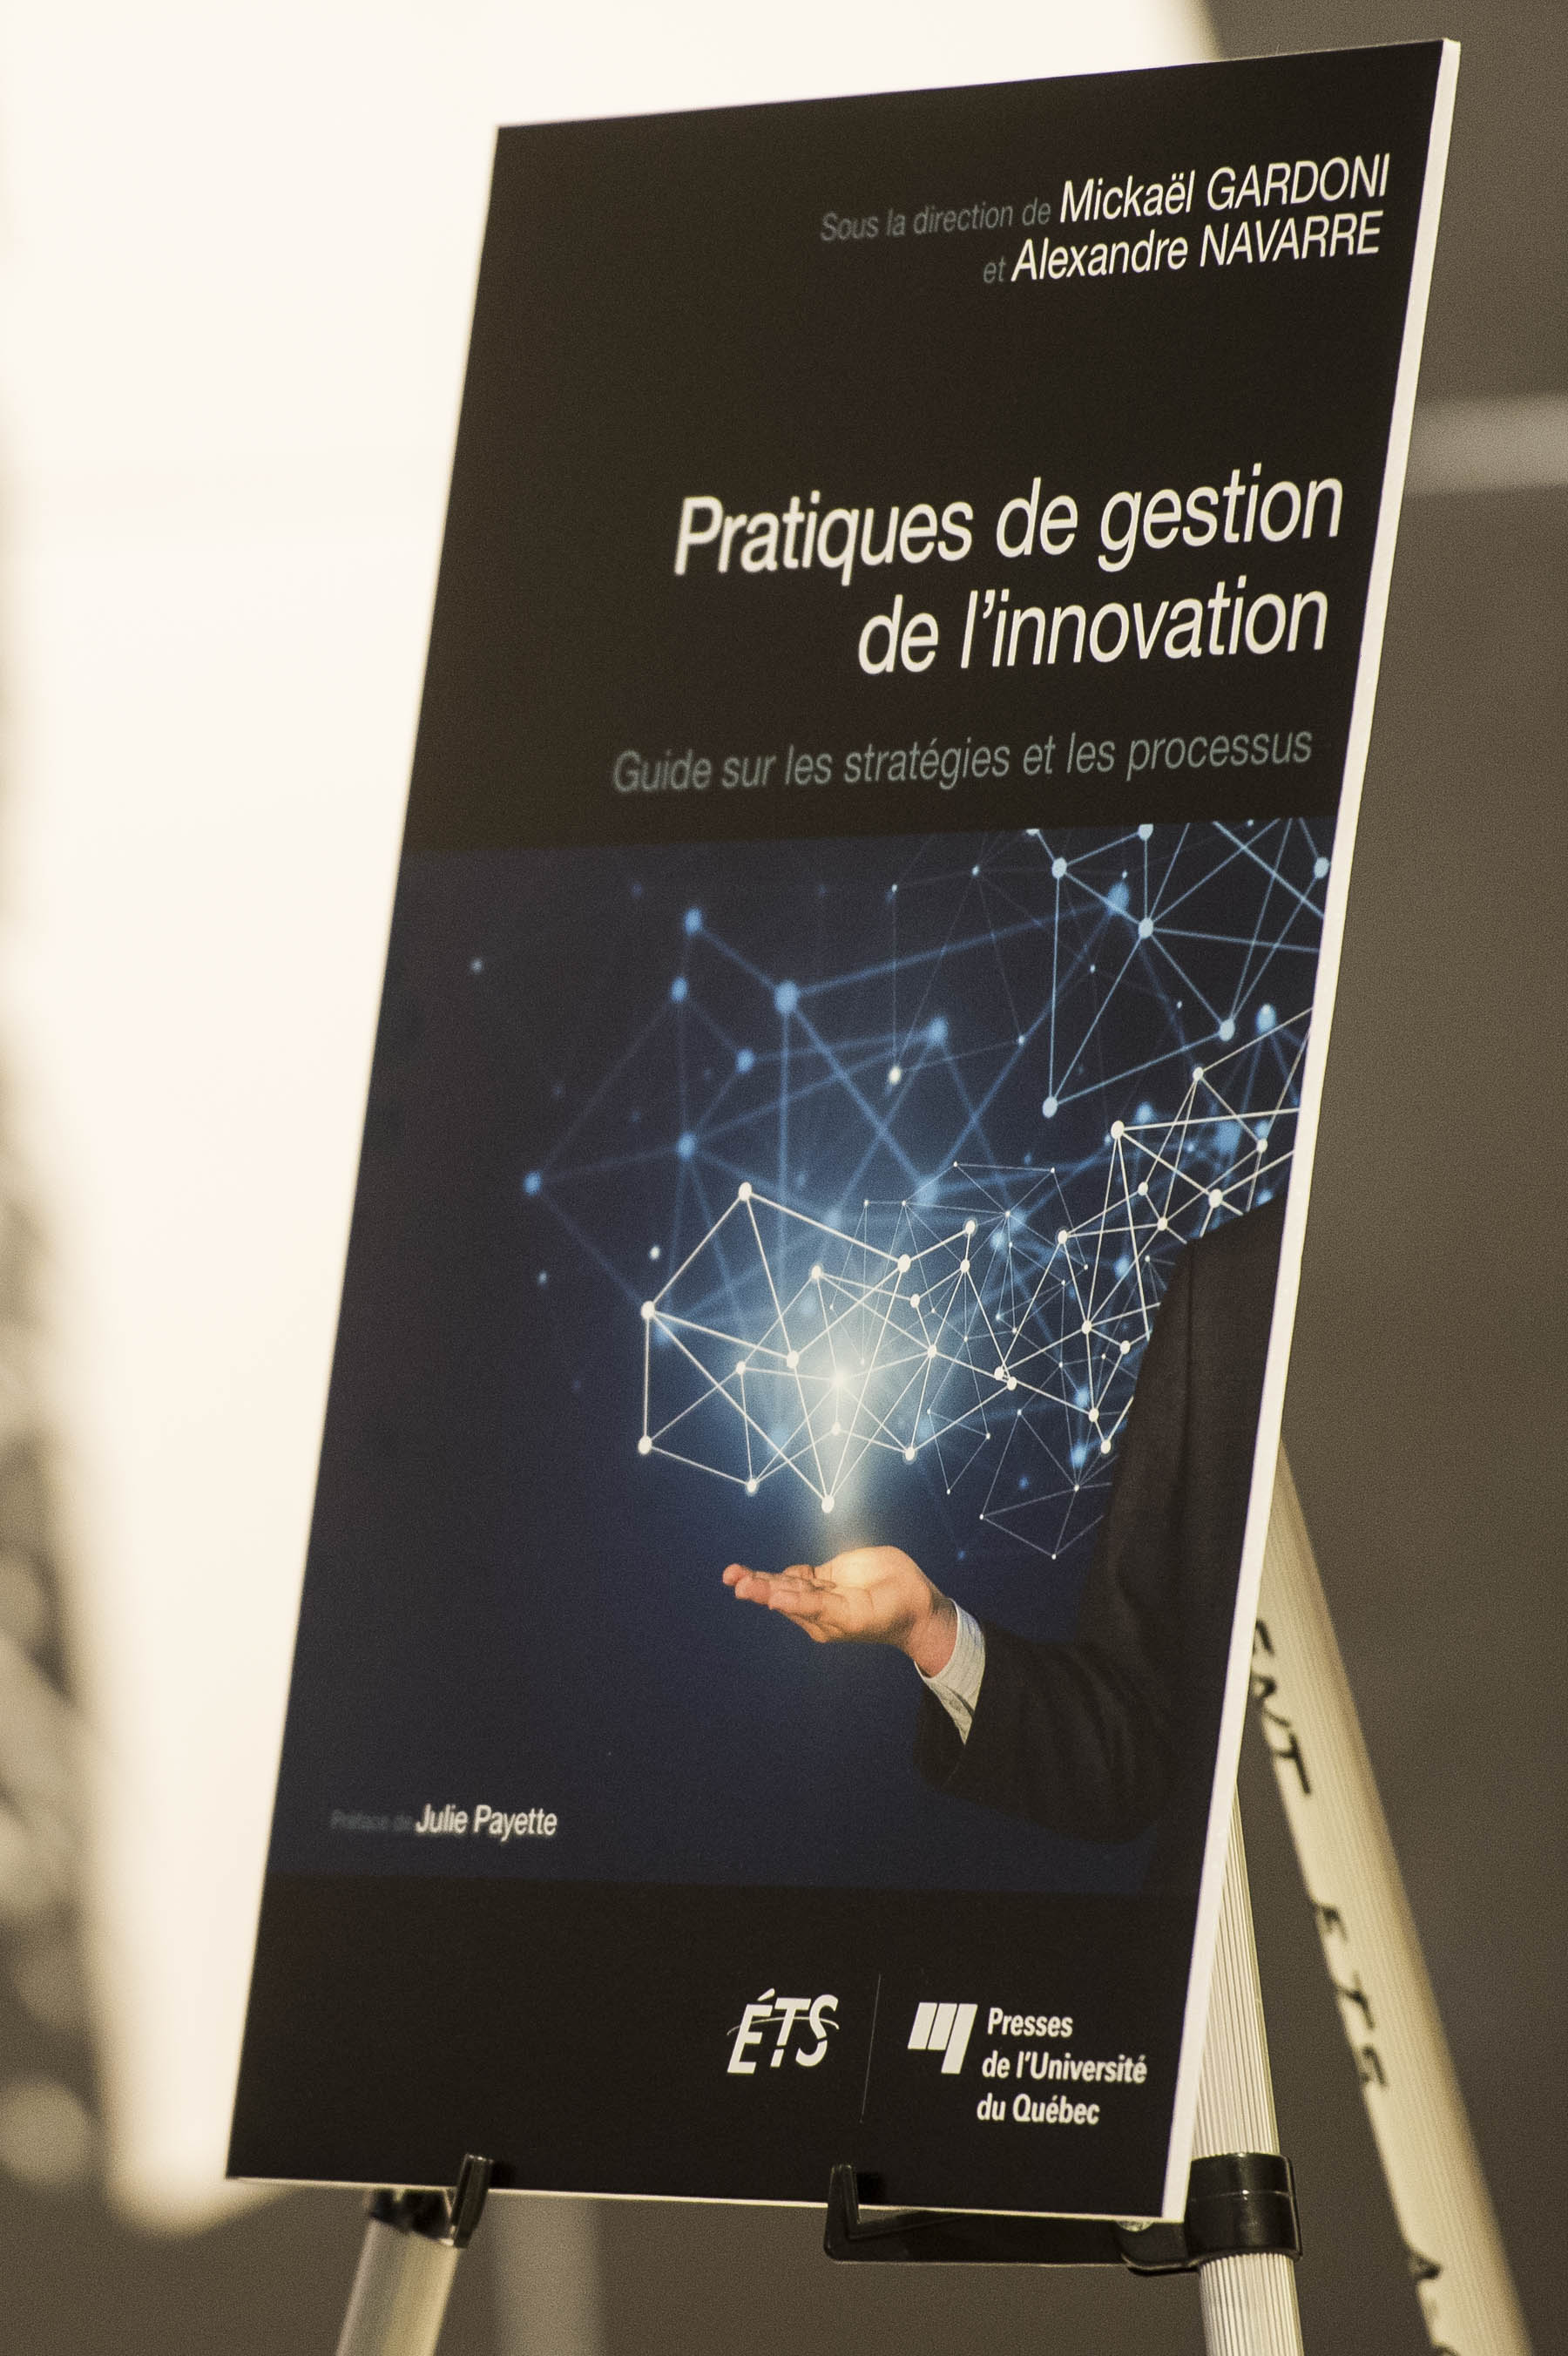 In the evening, Her Excellency attended the book launch of 'Pratiques de gestion de l'innovation'.